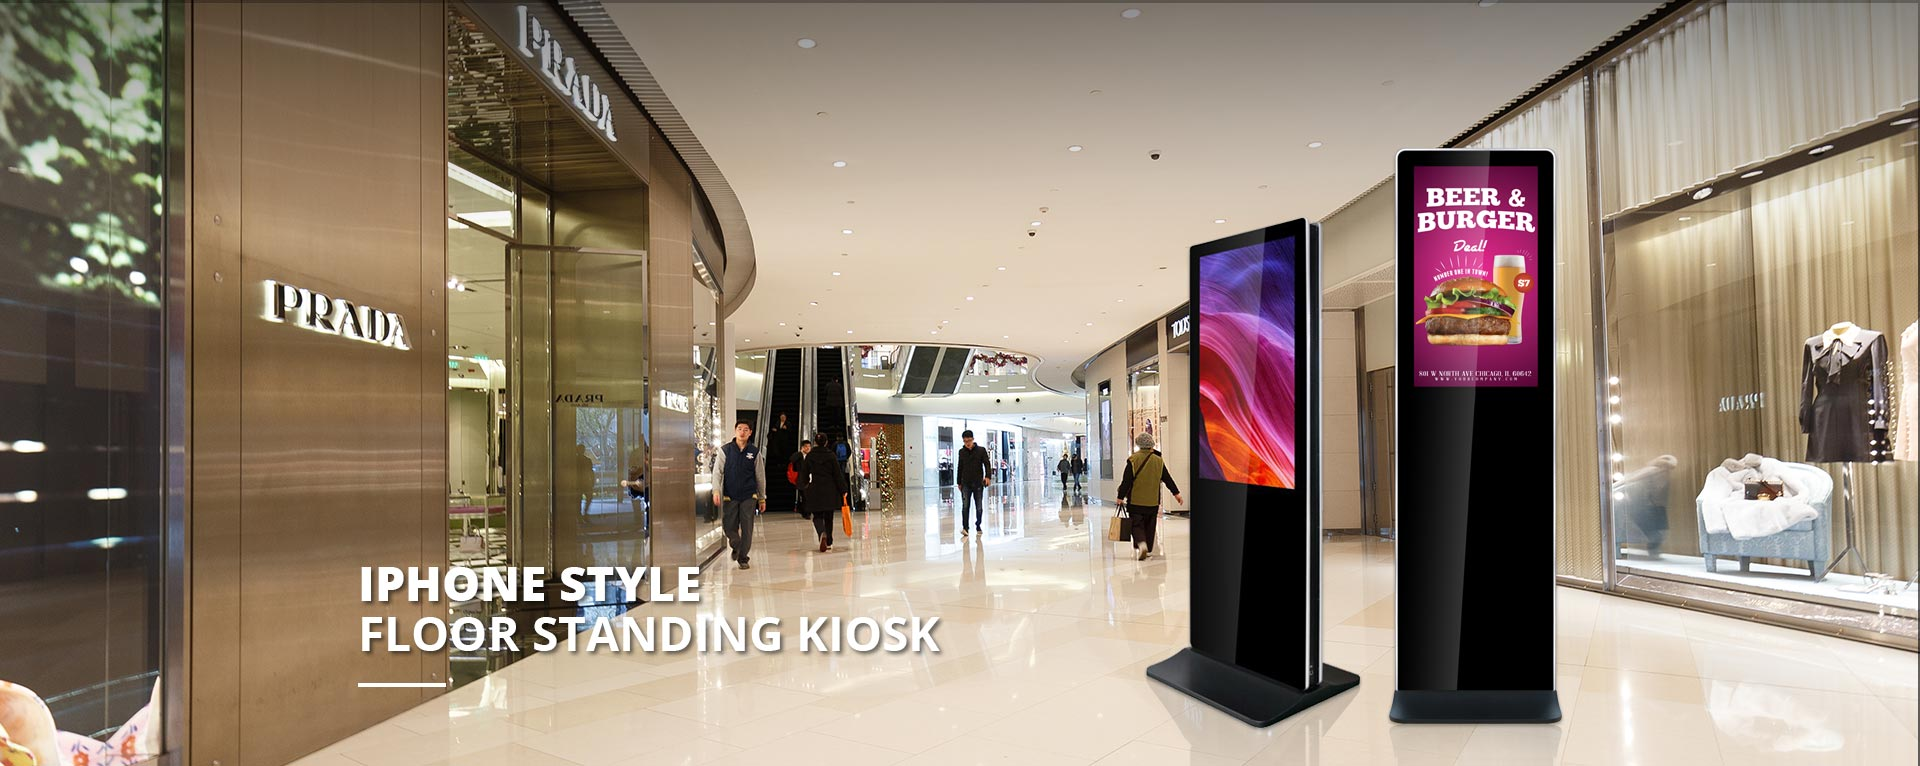 Iphone Stype Floor Standing Kiosk